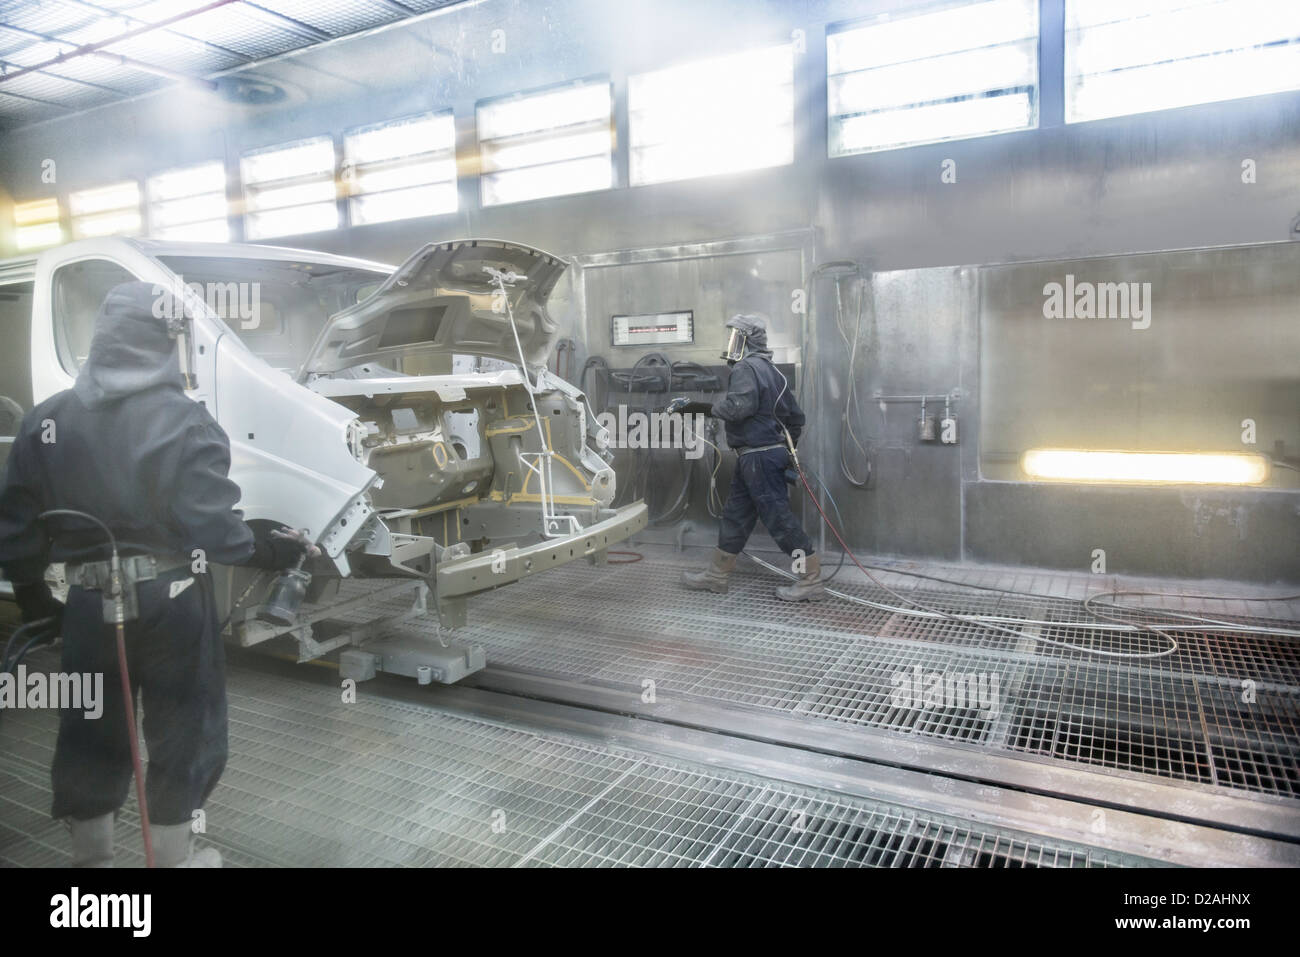 Workers spray painting in car factory - Stock Image